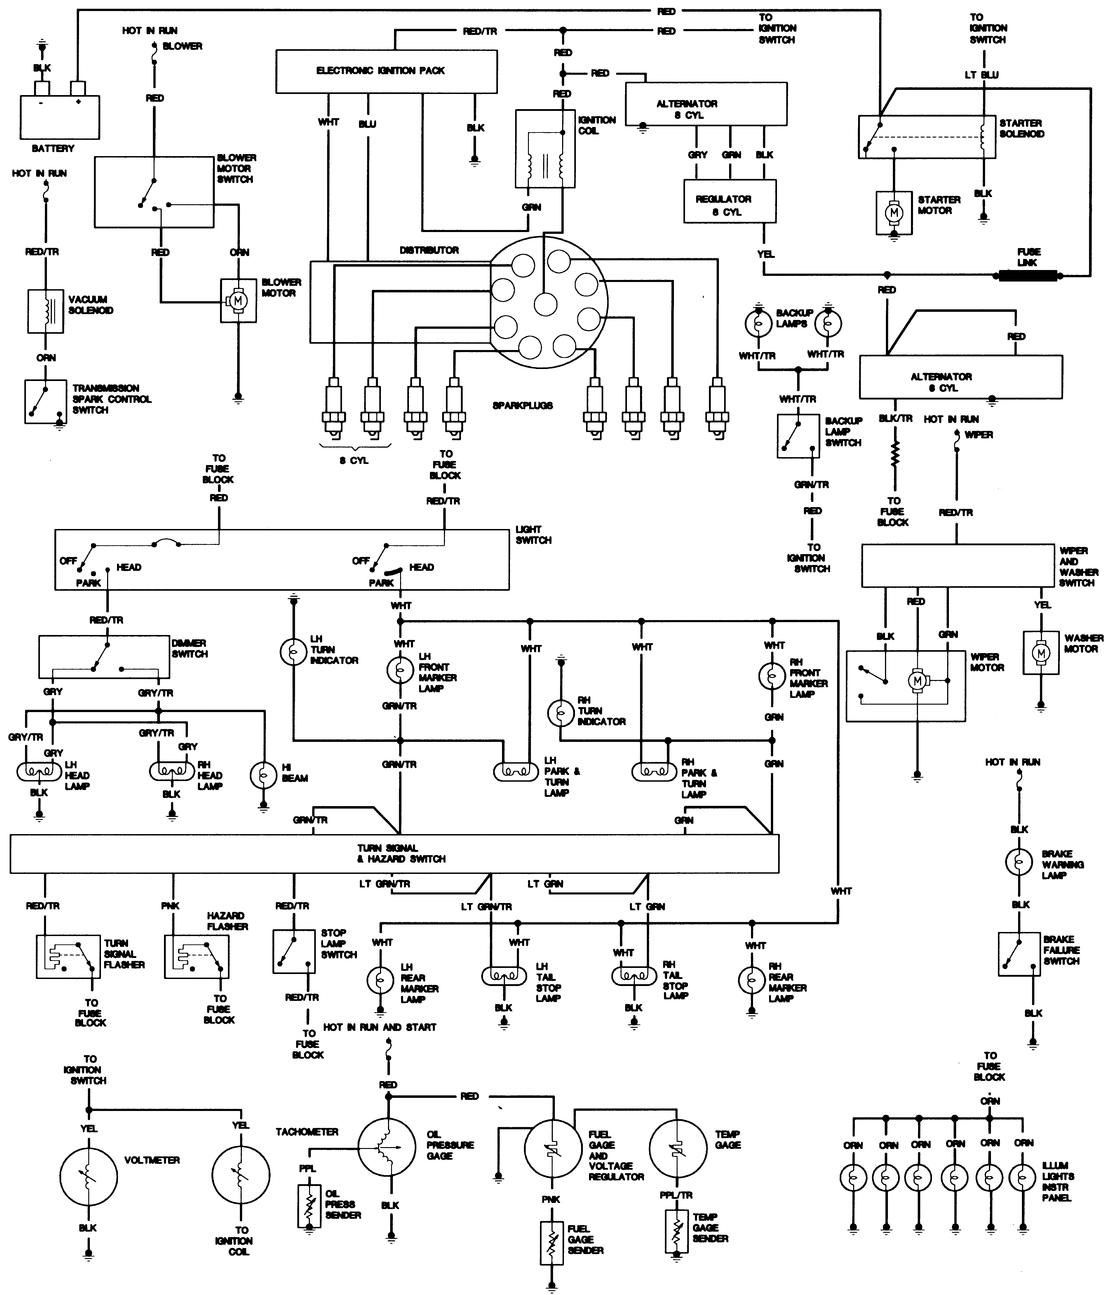 hight resolution of 86 cj7 engine wiring wiring diagram load jeep cj engine wiring diagram 86 cj7 engine wiring